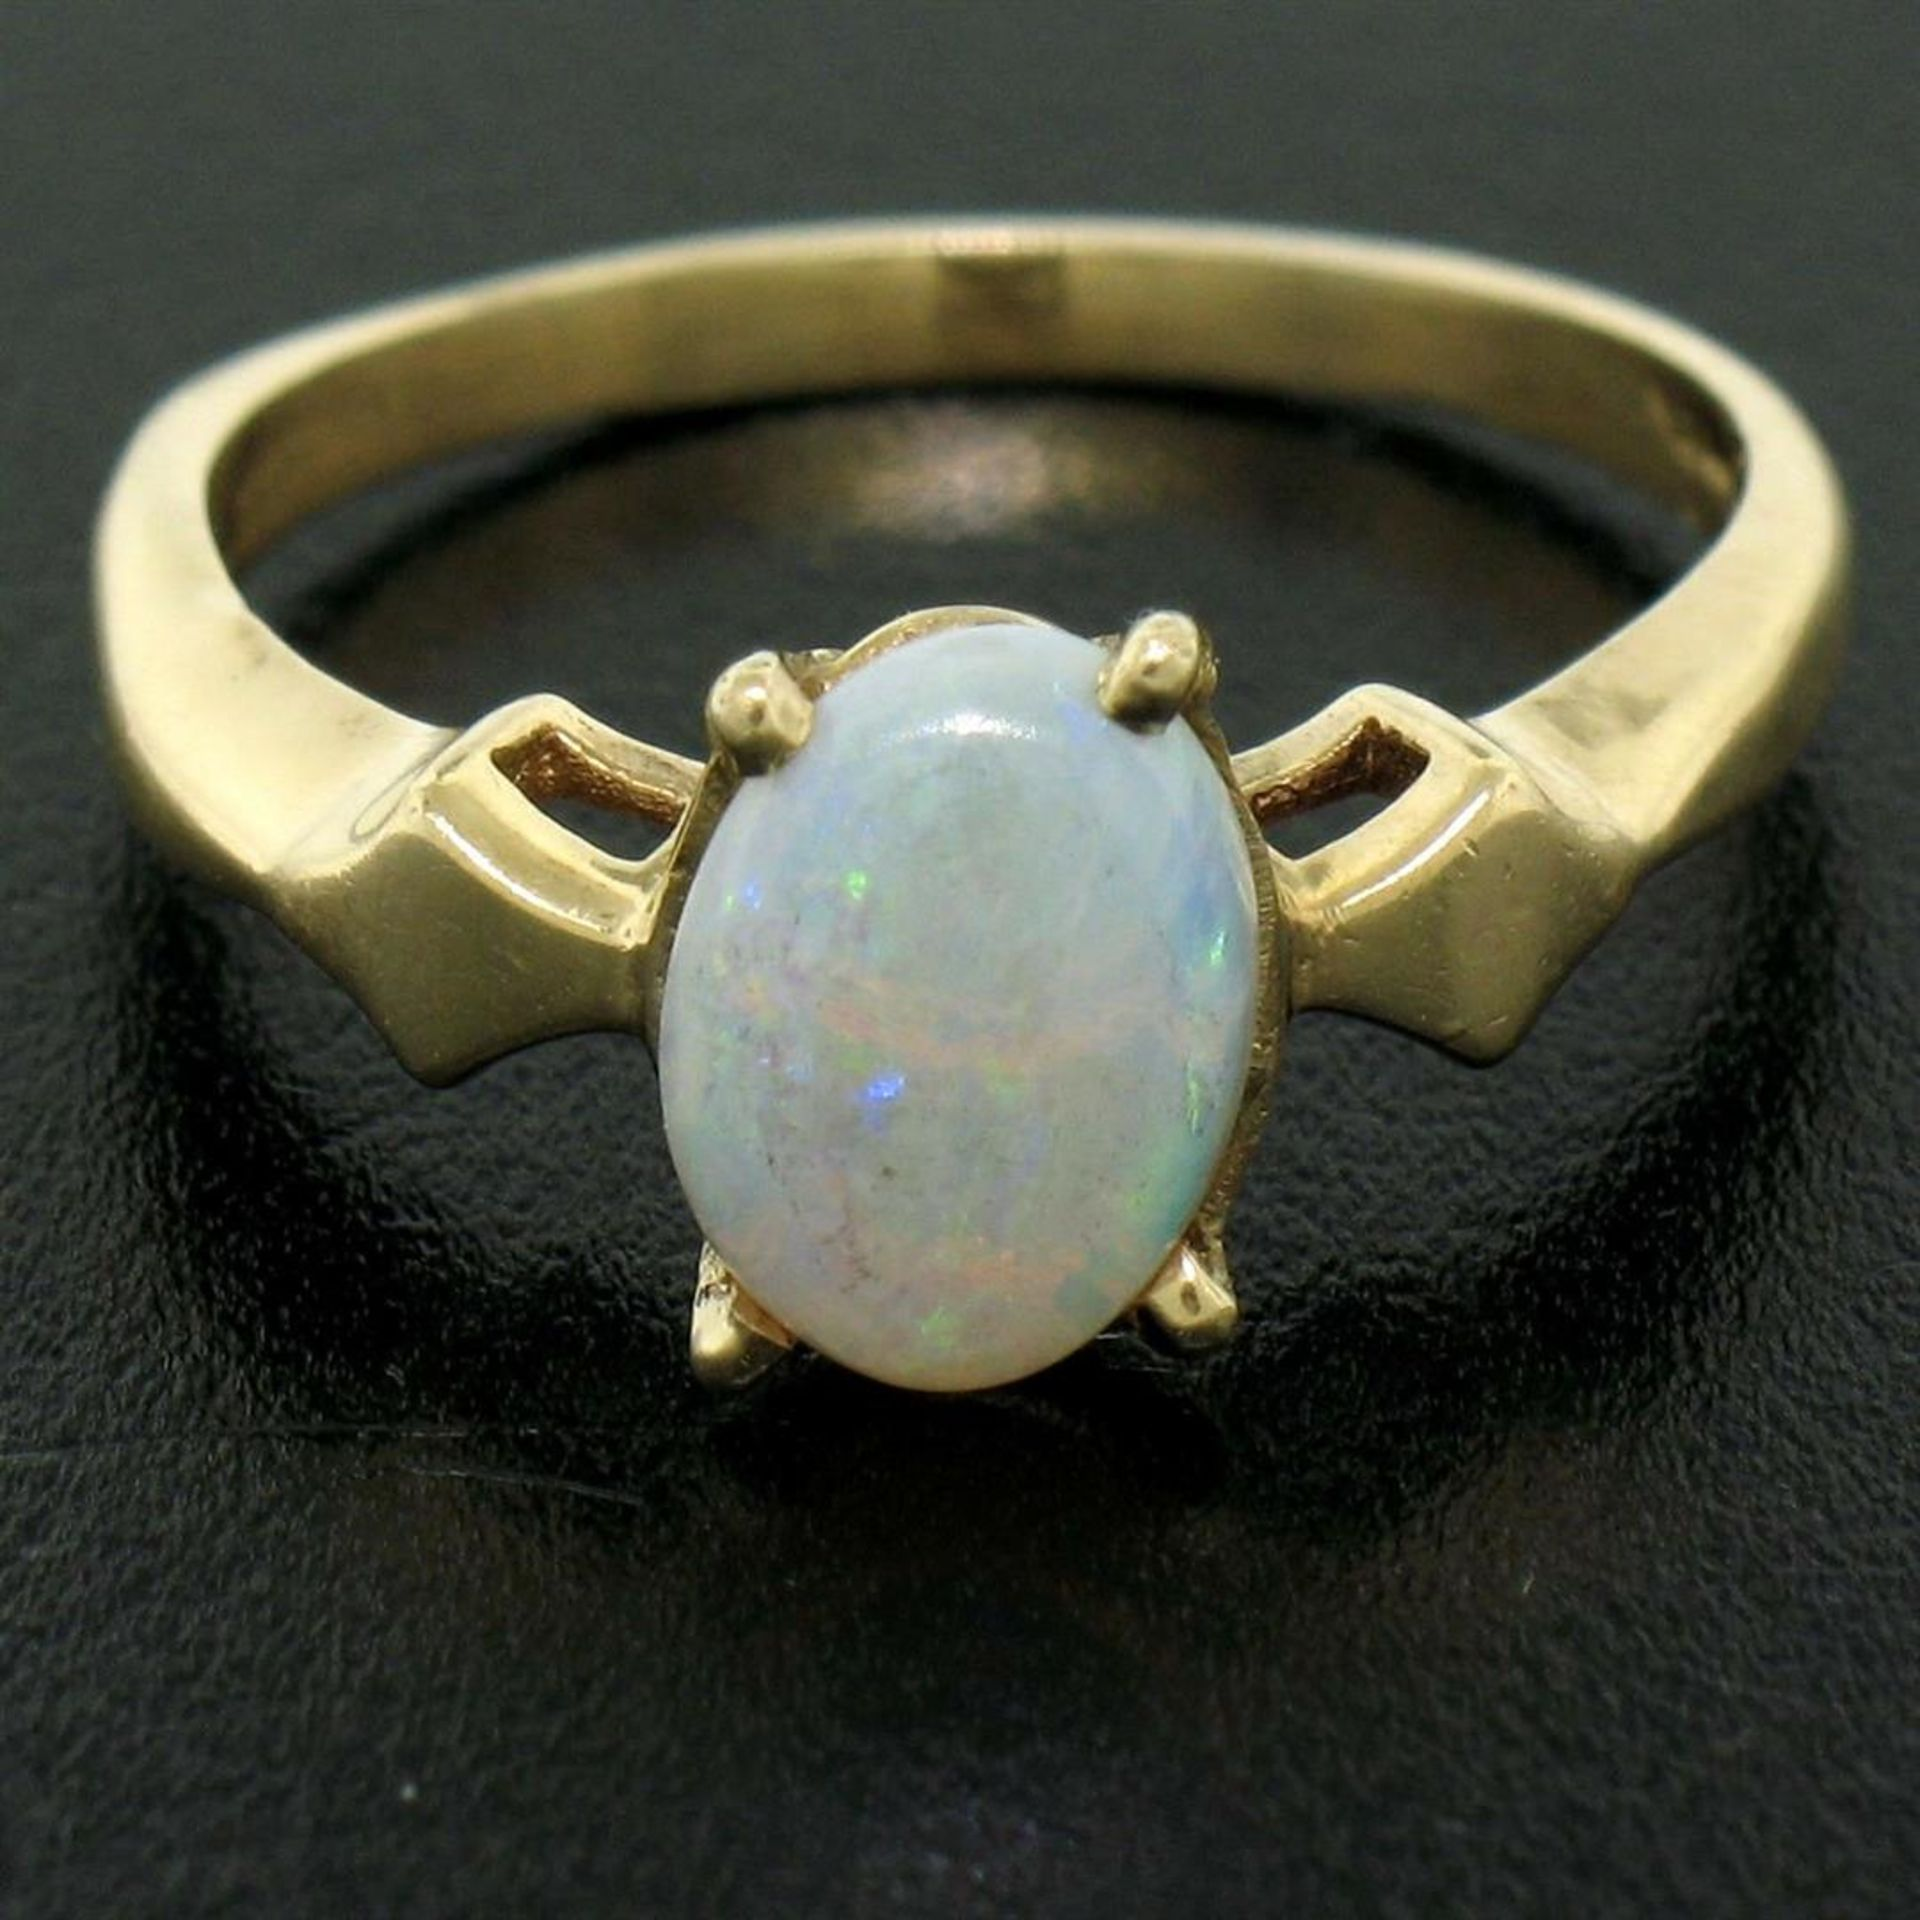 Vintage 14K Yellow Gold 0.65ct Petite Oval Cabochon Opal Solitaire Ring Size 6 - Image 8 of 9